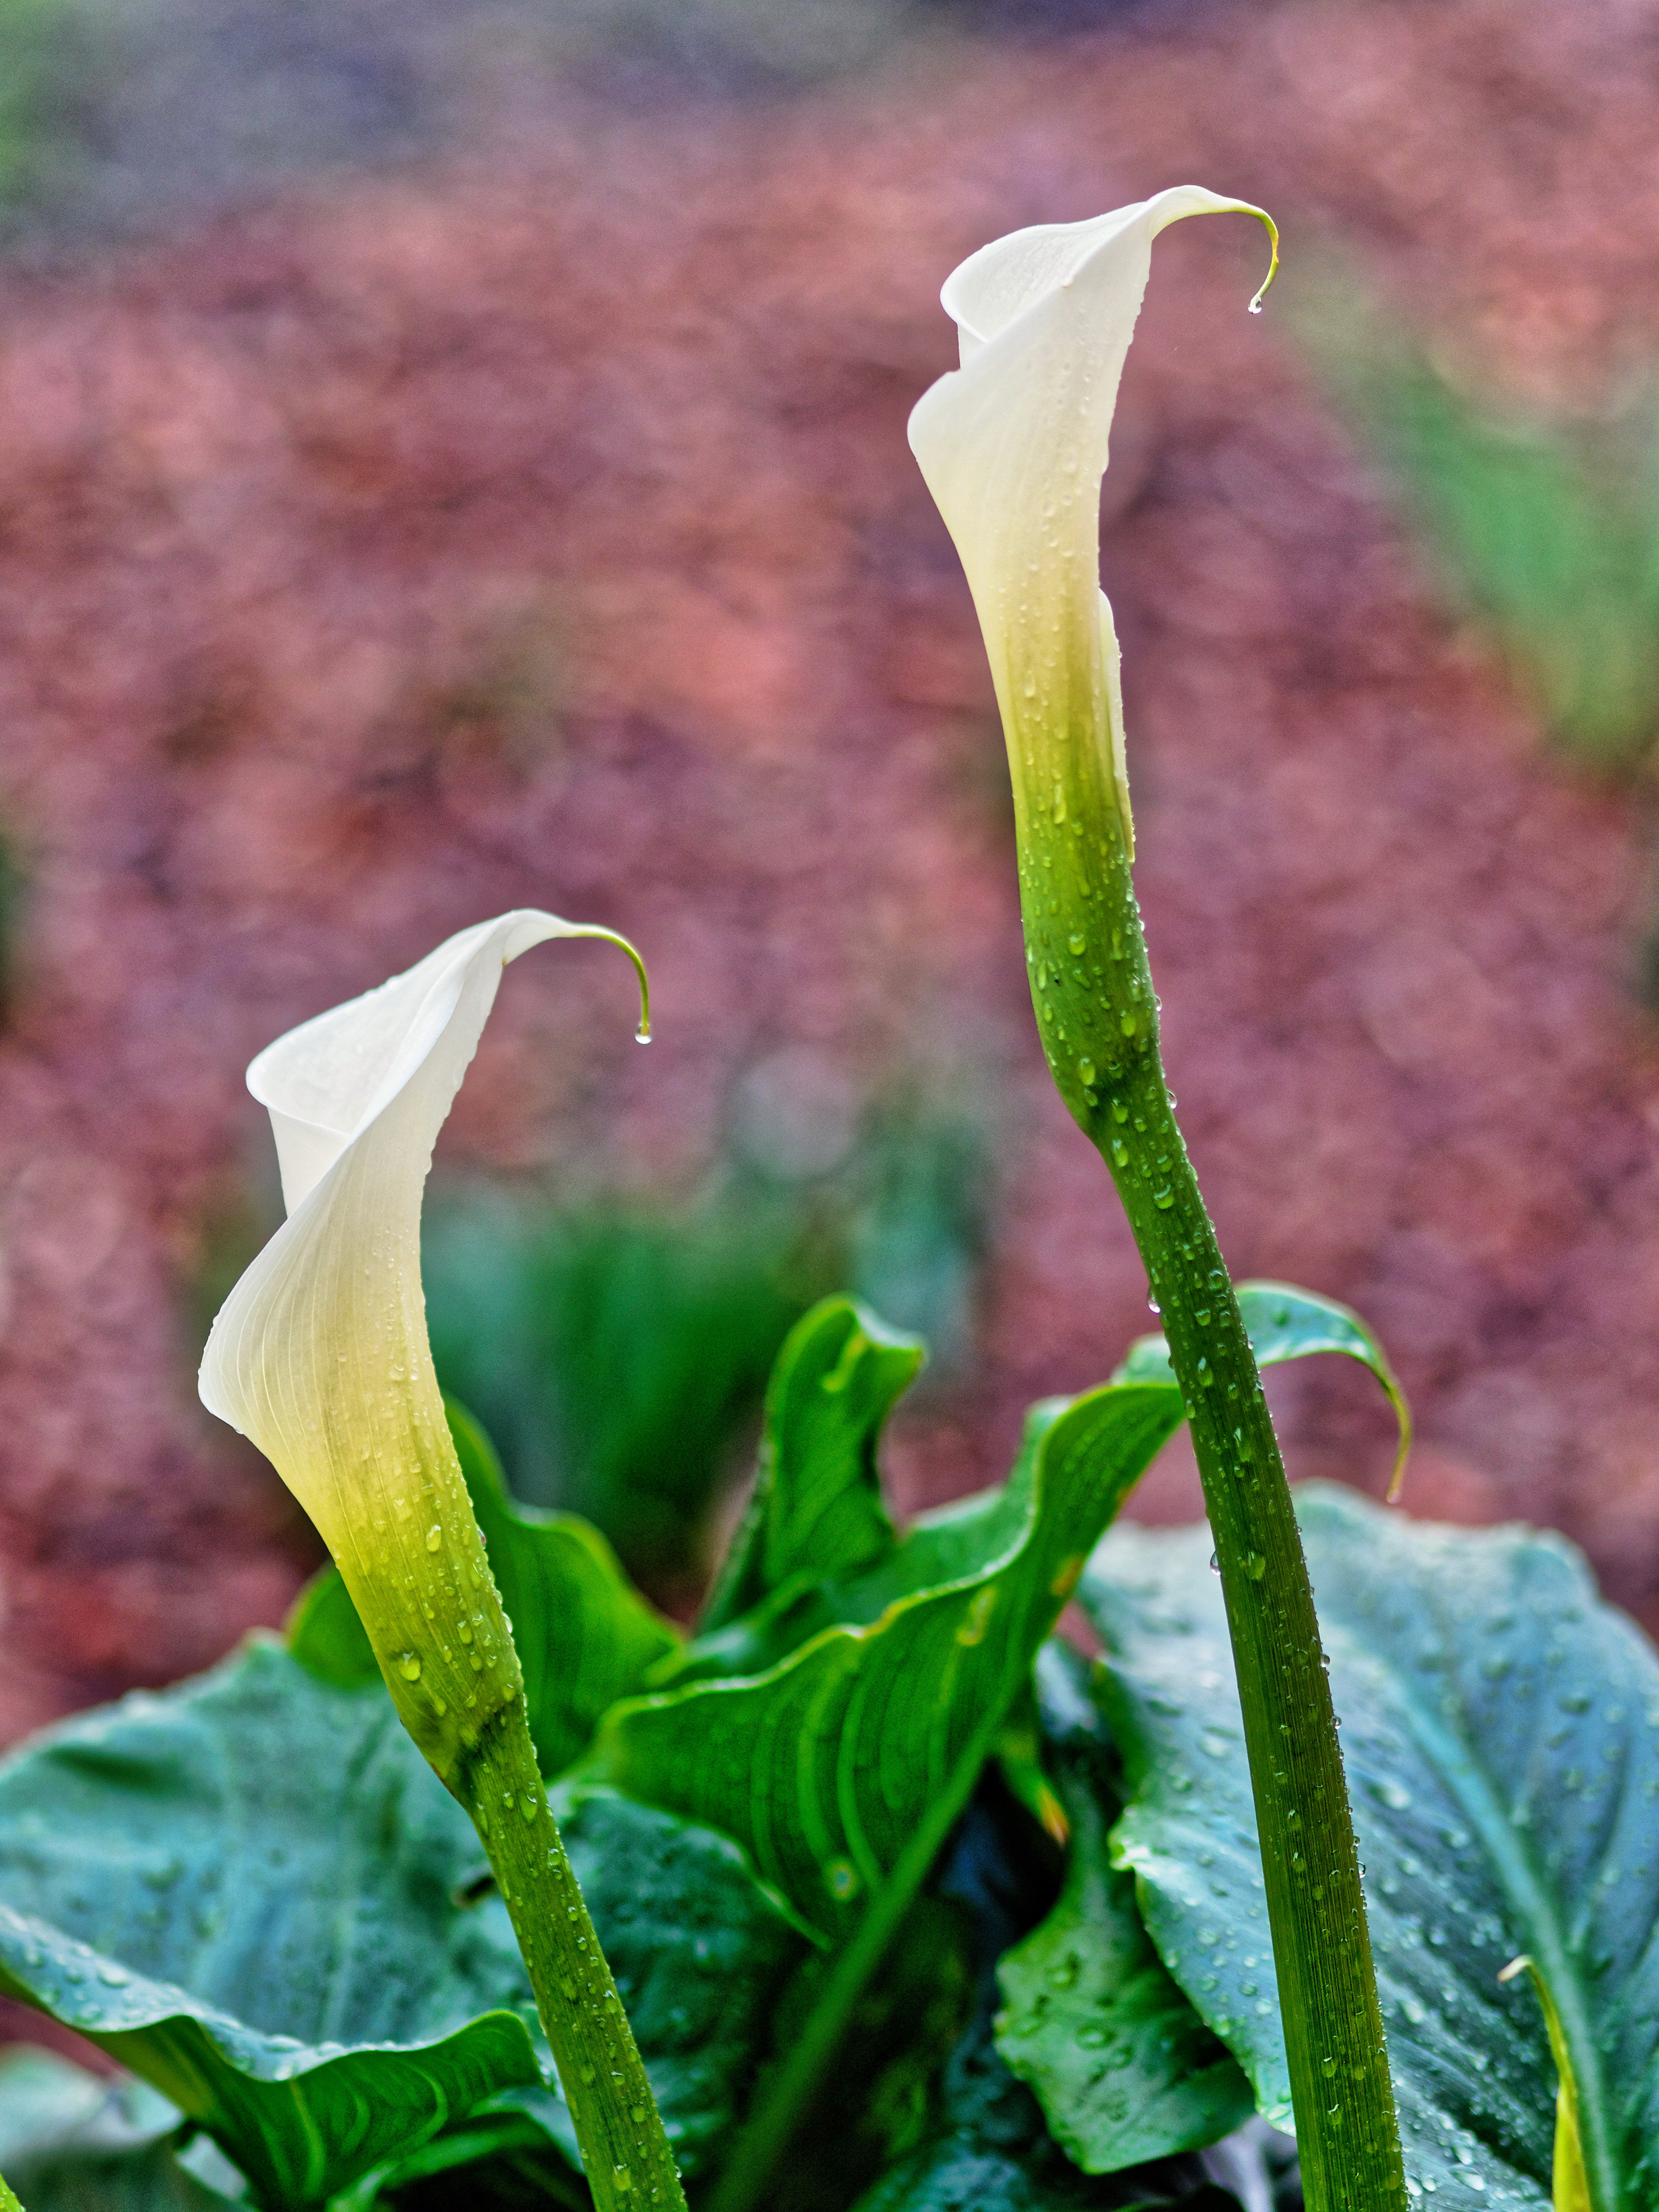 This should be Arum-lily-buds-1.jpeg.  Is it missing?